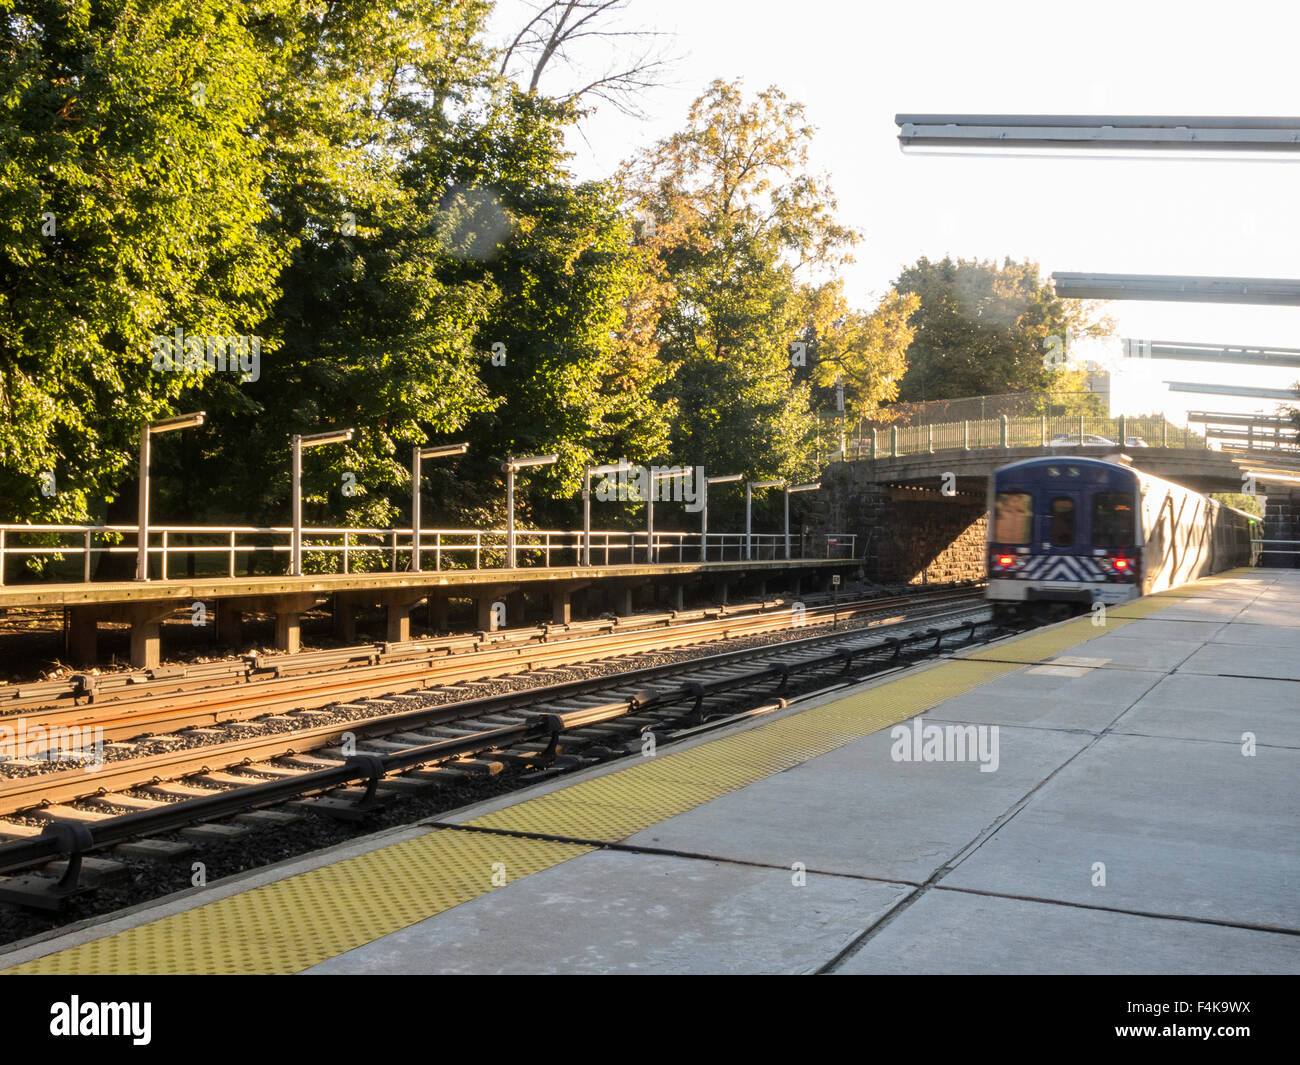 botanical garden, metro-north train station, new york stock photo